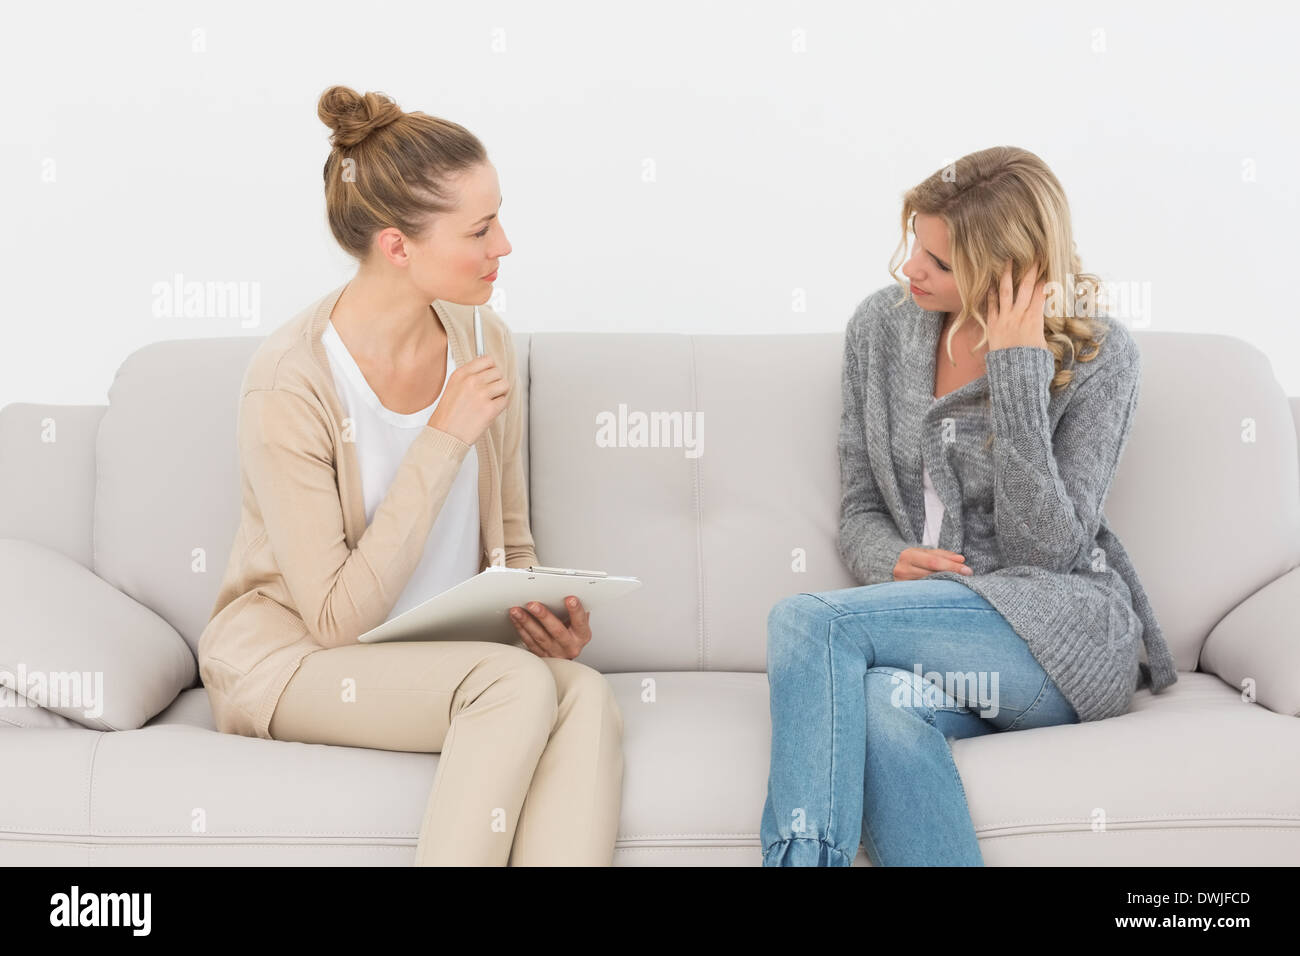 Upset woman talking to her therapist on the couch - Stock Image